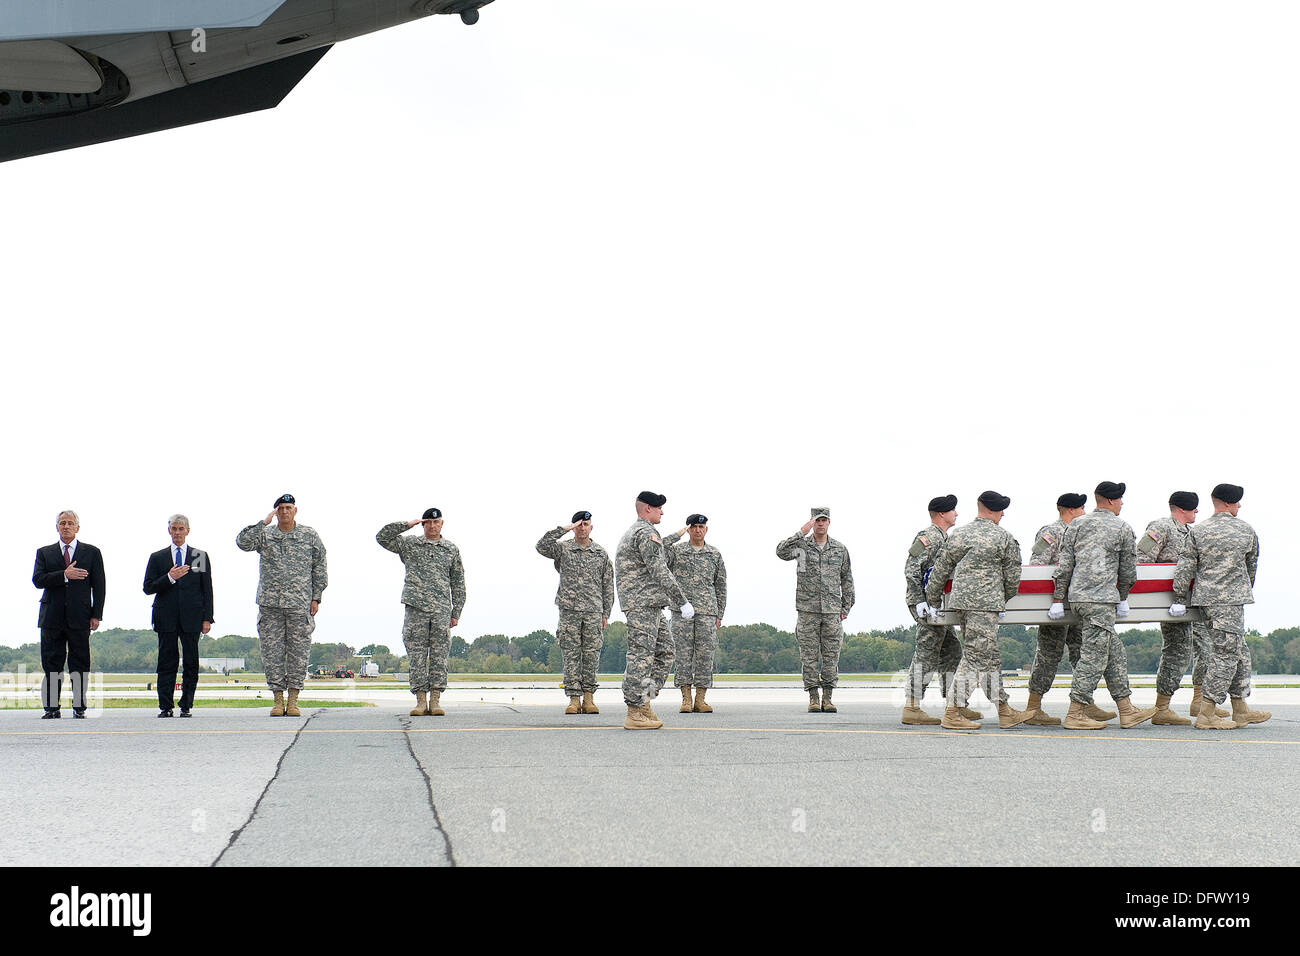 US Secretary of Defense Chuck Hagel, left, stands his hand over his heart with Secretary of the Army John McHugh and Army Chief General Ray Odierno and other military leaders as white-gloved soldiers carried the flag-draped case carrying the remains of Army Pfc. Cody from a C-17 cargo plane at Dover Air Force Base October 9, 2013 in Dover, DE.  Hagel announced that the Fisher House Foundation will provide the families of the fallen with the soldiers death benefits which cannot be paid by the Pentagon due to the government shutdown. - Stock Image